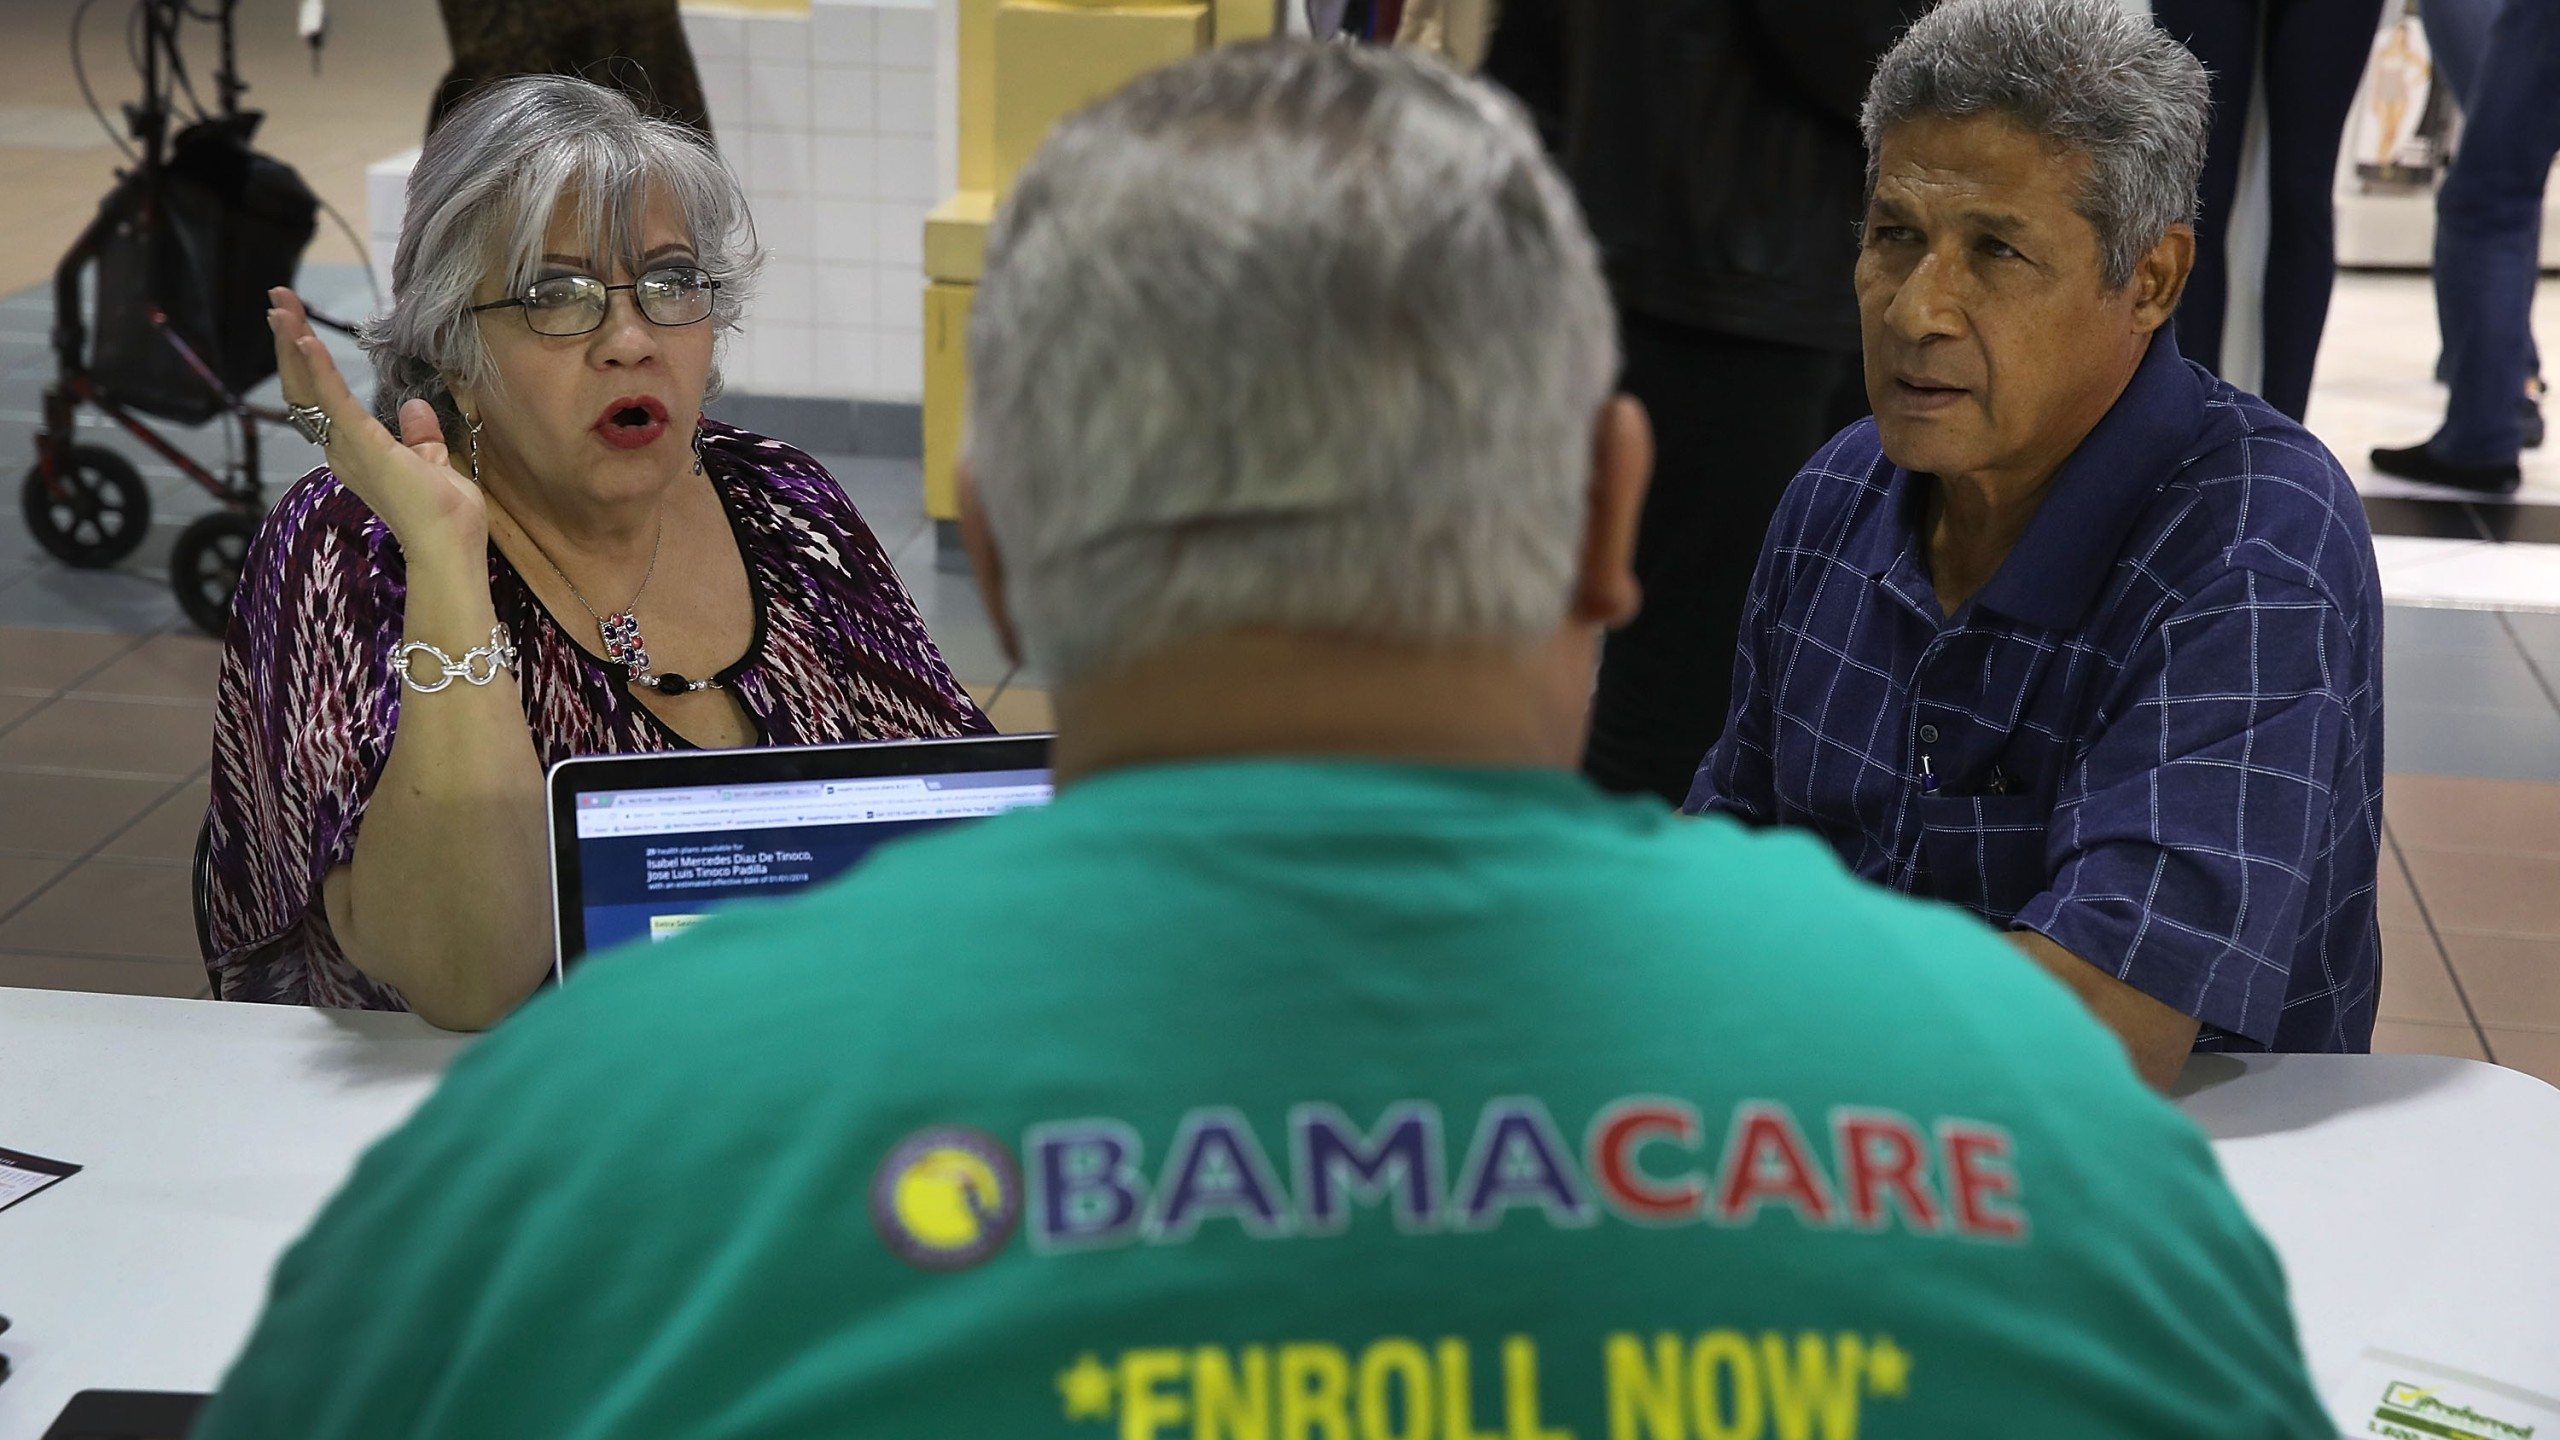 Isabel Diaz Tinoco, left, and Jose Luis Tinoco speak with Otto Hernandez, an insurance agent from Sunshine Life and Health Advisors, as they shop for insurance under the Affordable Care Act at a store setup in the Mall of Americas on Nov. 1, 2017, in Miami, Florida. (Credit: Joe Raedle/Getty Images)